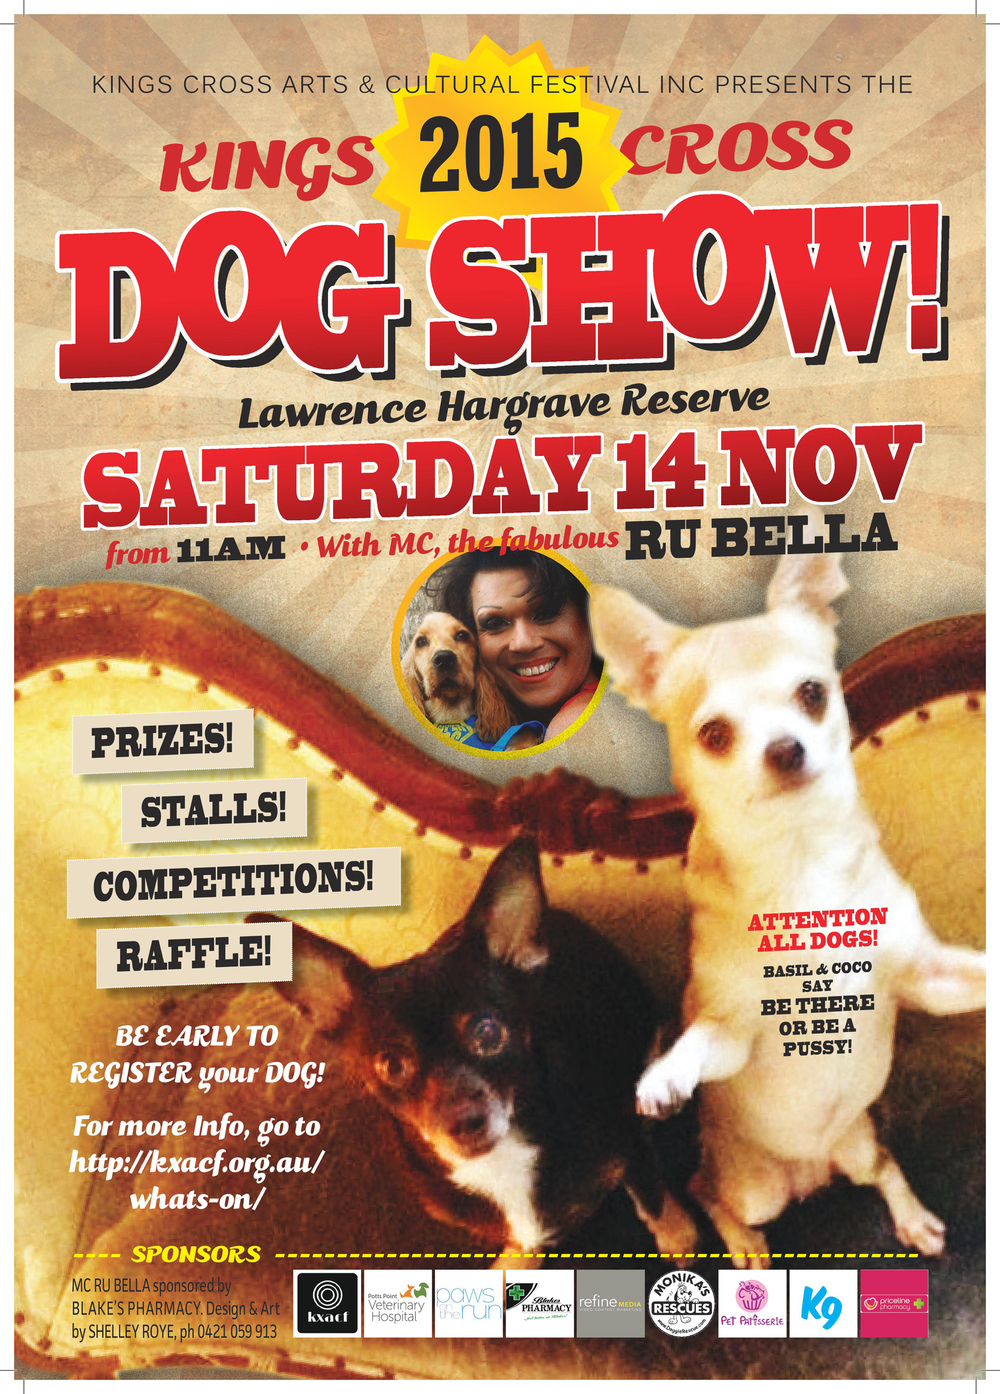 2015-kings-cross-dog-show-poster.jpg